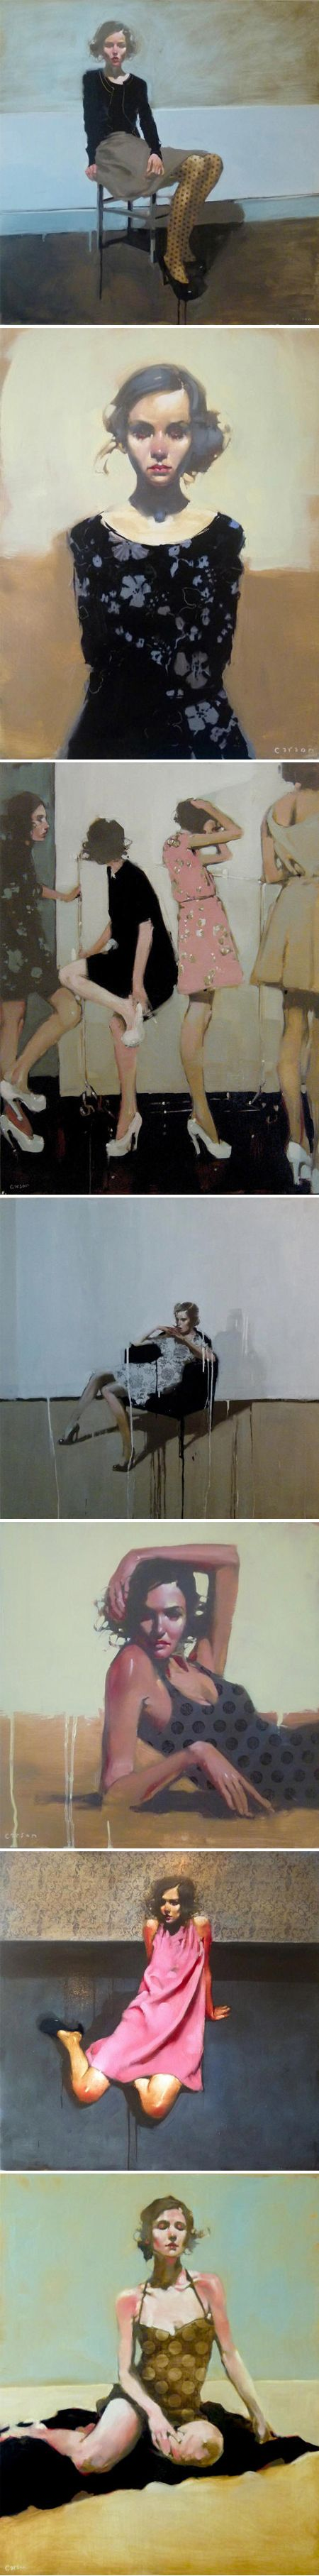 michael carson - polka dots, flat florals, and pretty girls <3: Micheal Carson, Polka Dots, Art Paintings, Michaelcarson, Painters Michael, American Painters, Brushes Strokes, Flats Floral, Michael Carson